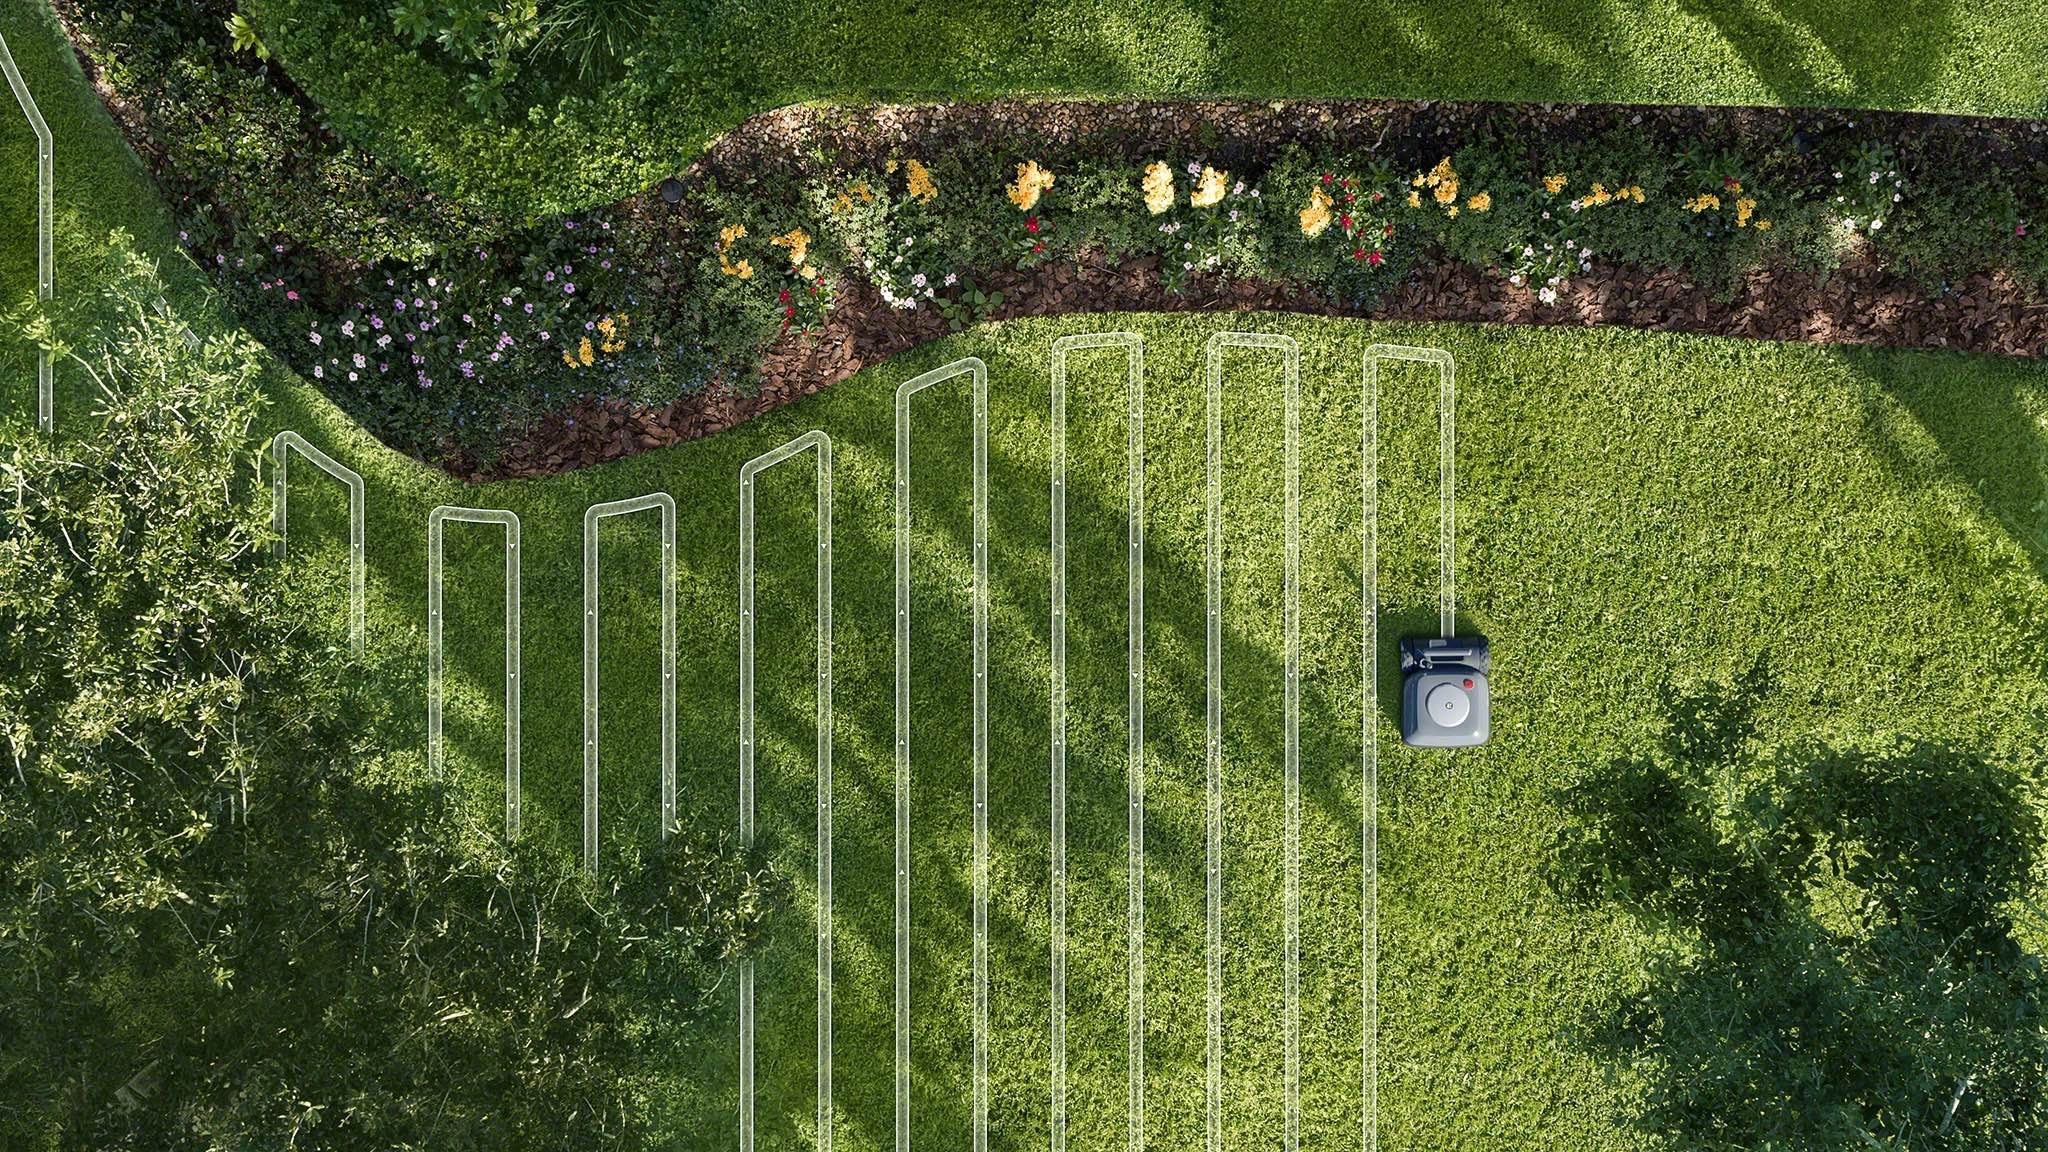 iRobot Terra robot mower will mow in a neat straight line pattern